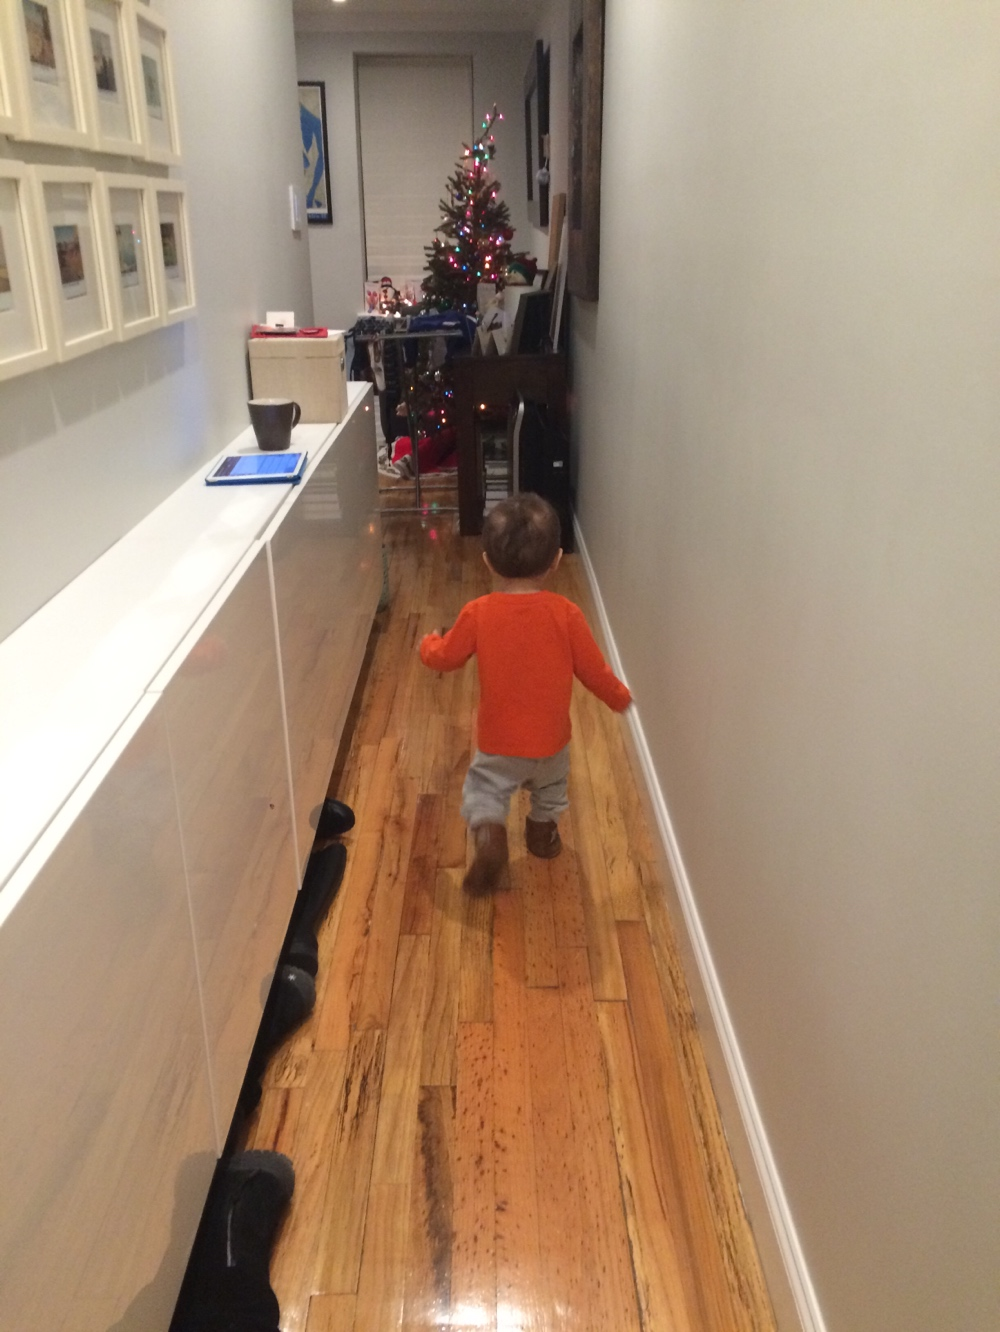 Baby walking down hallway